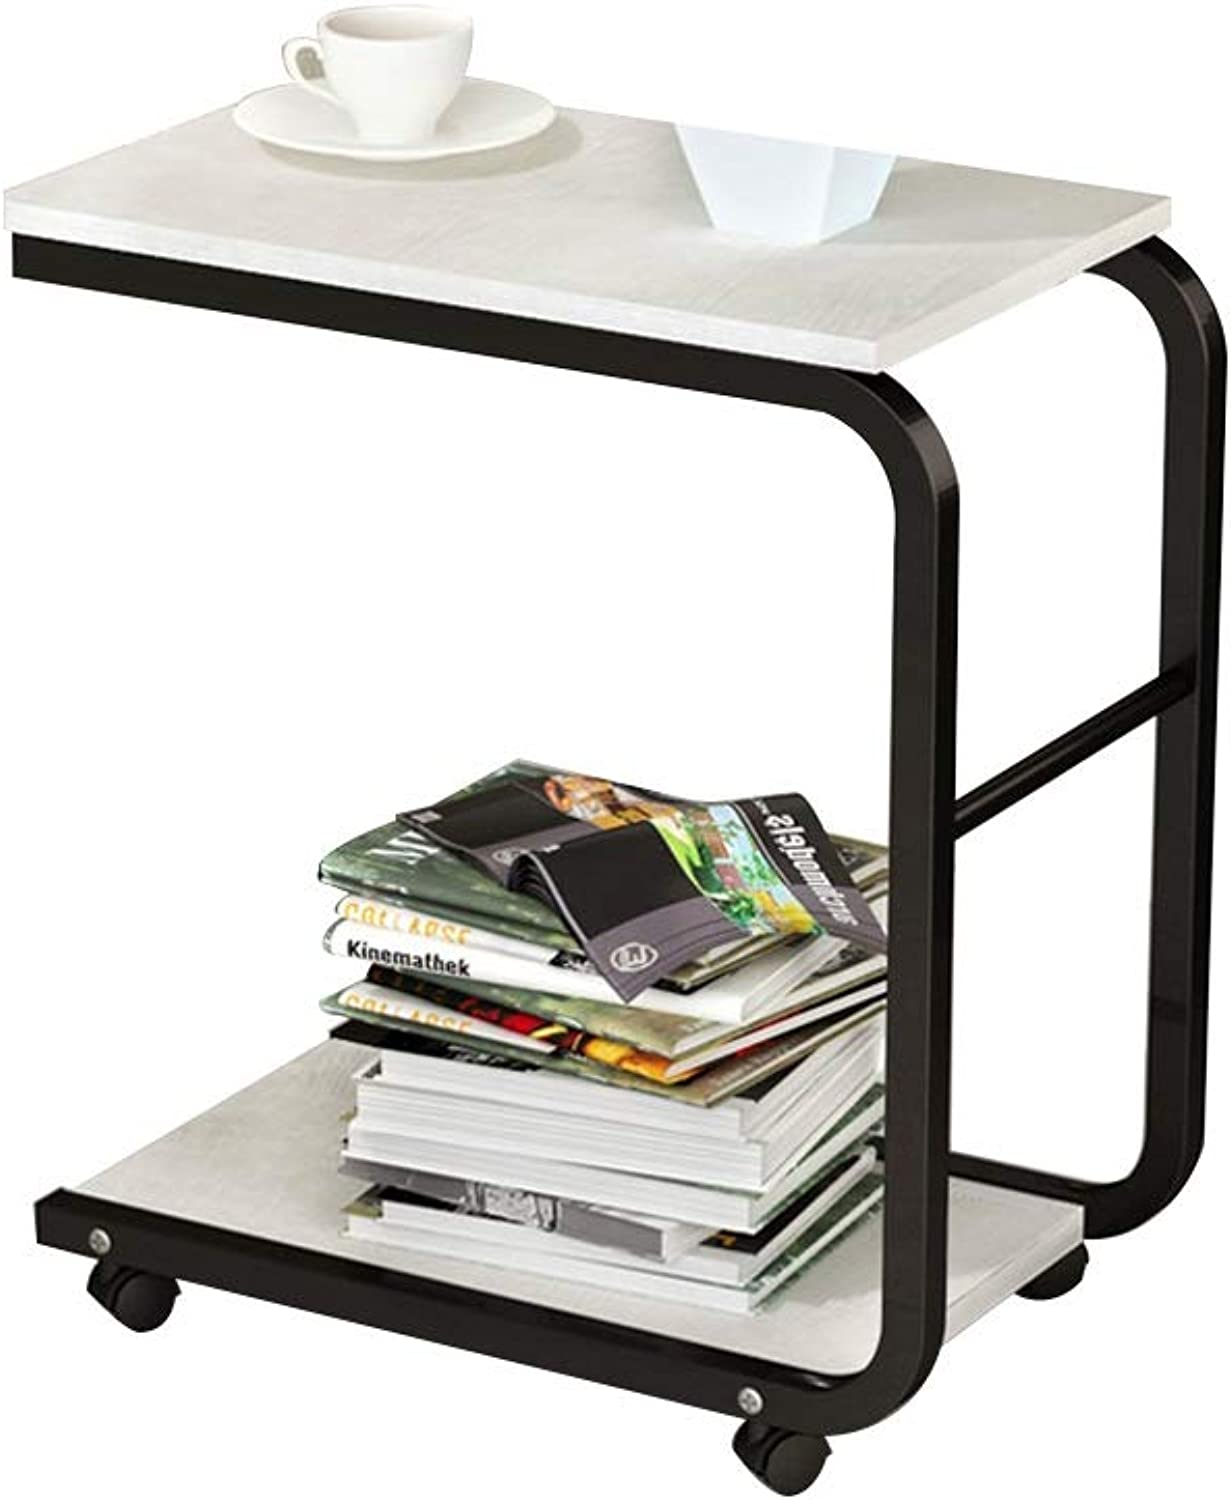 Coffee Table Side Table, Practical Multifunctional Mobile Small Coffee Table for Bedroom Living Room